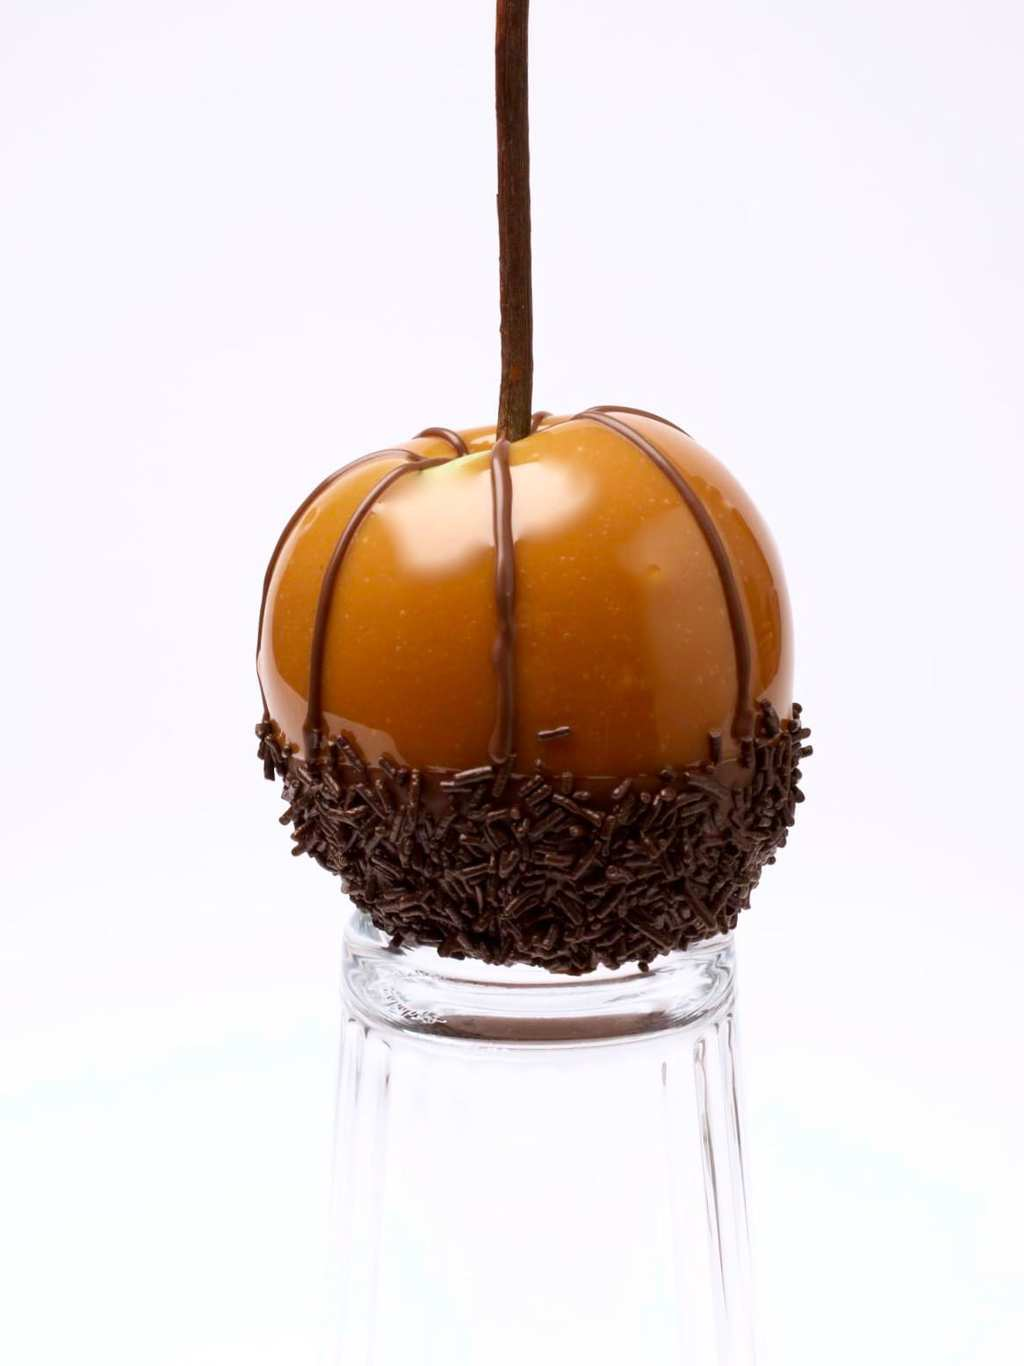 spiderweb caramel apples how to with chocolate stripes